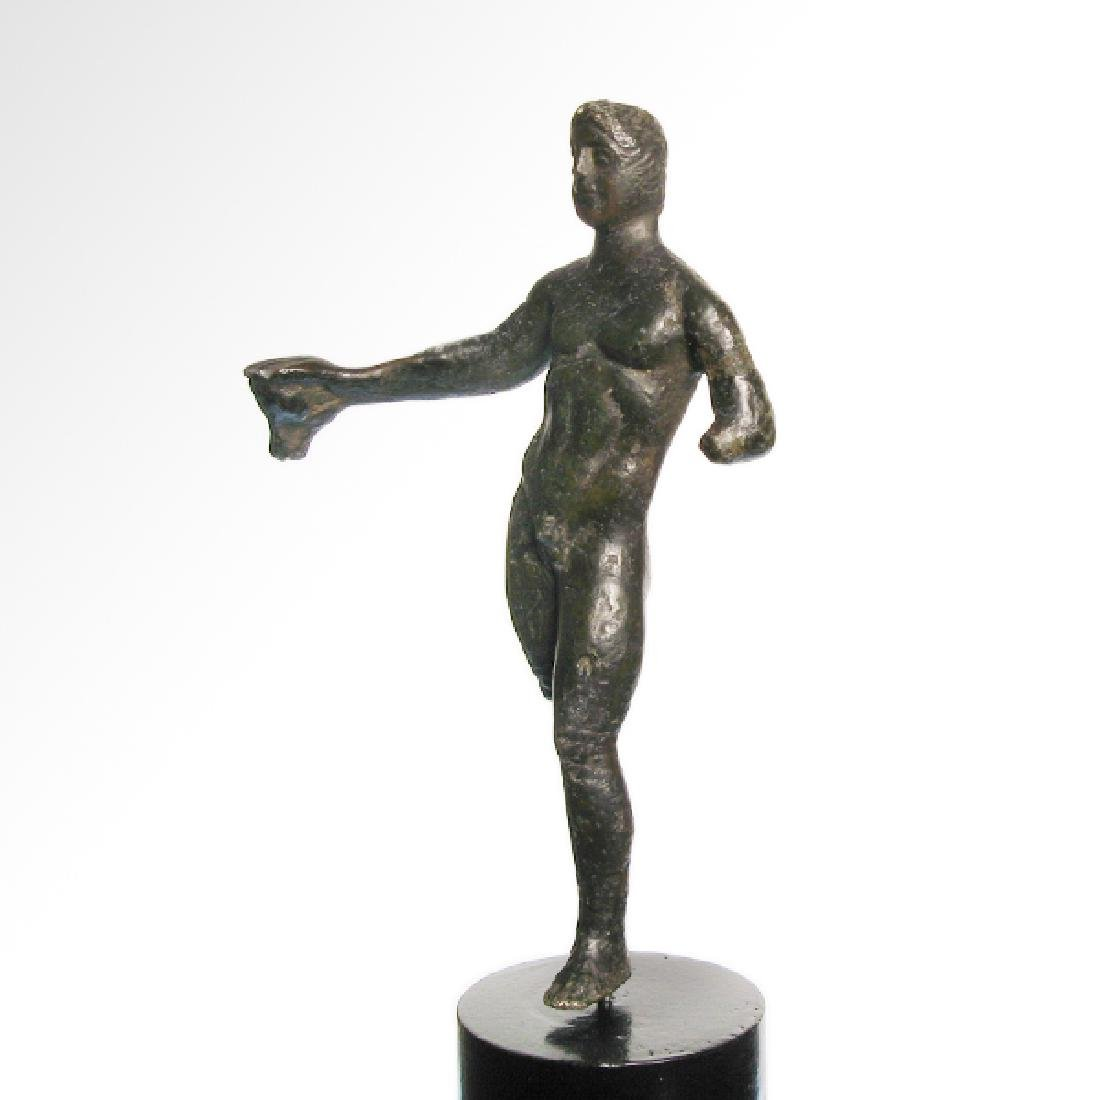 Etruscan Bronze Figure of an Athlete, c. 3rd-2nd - 5